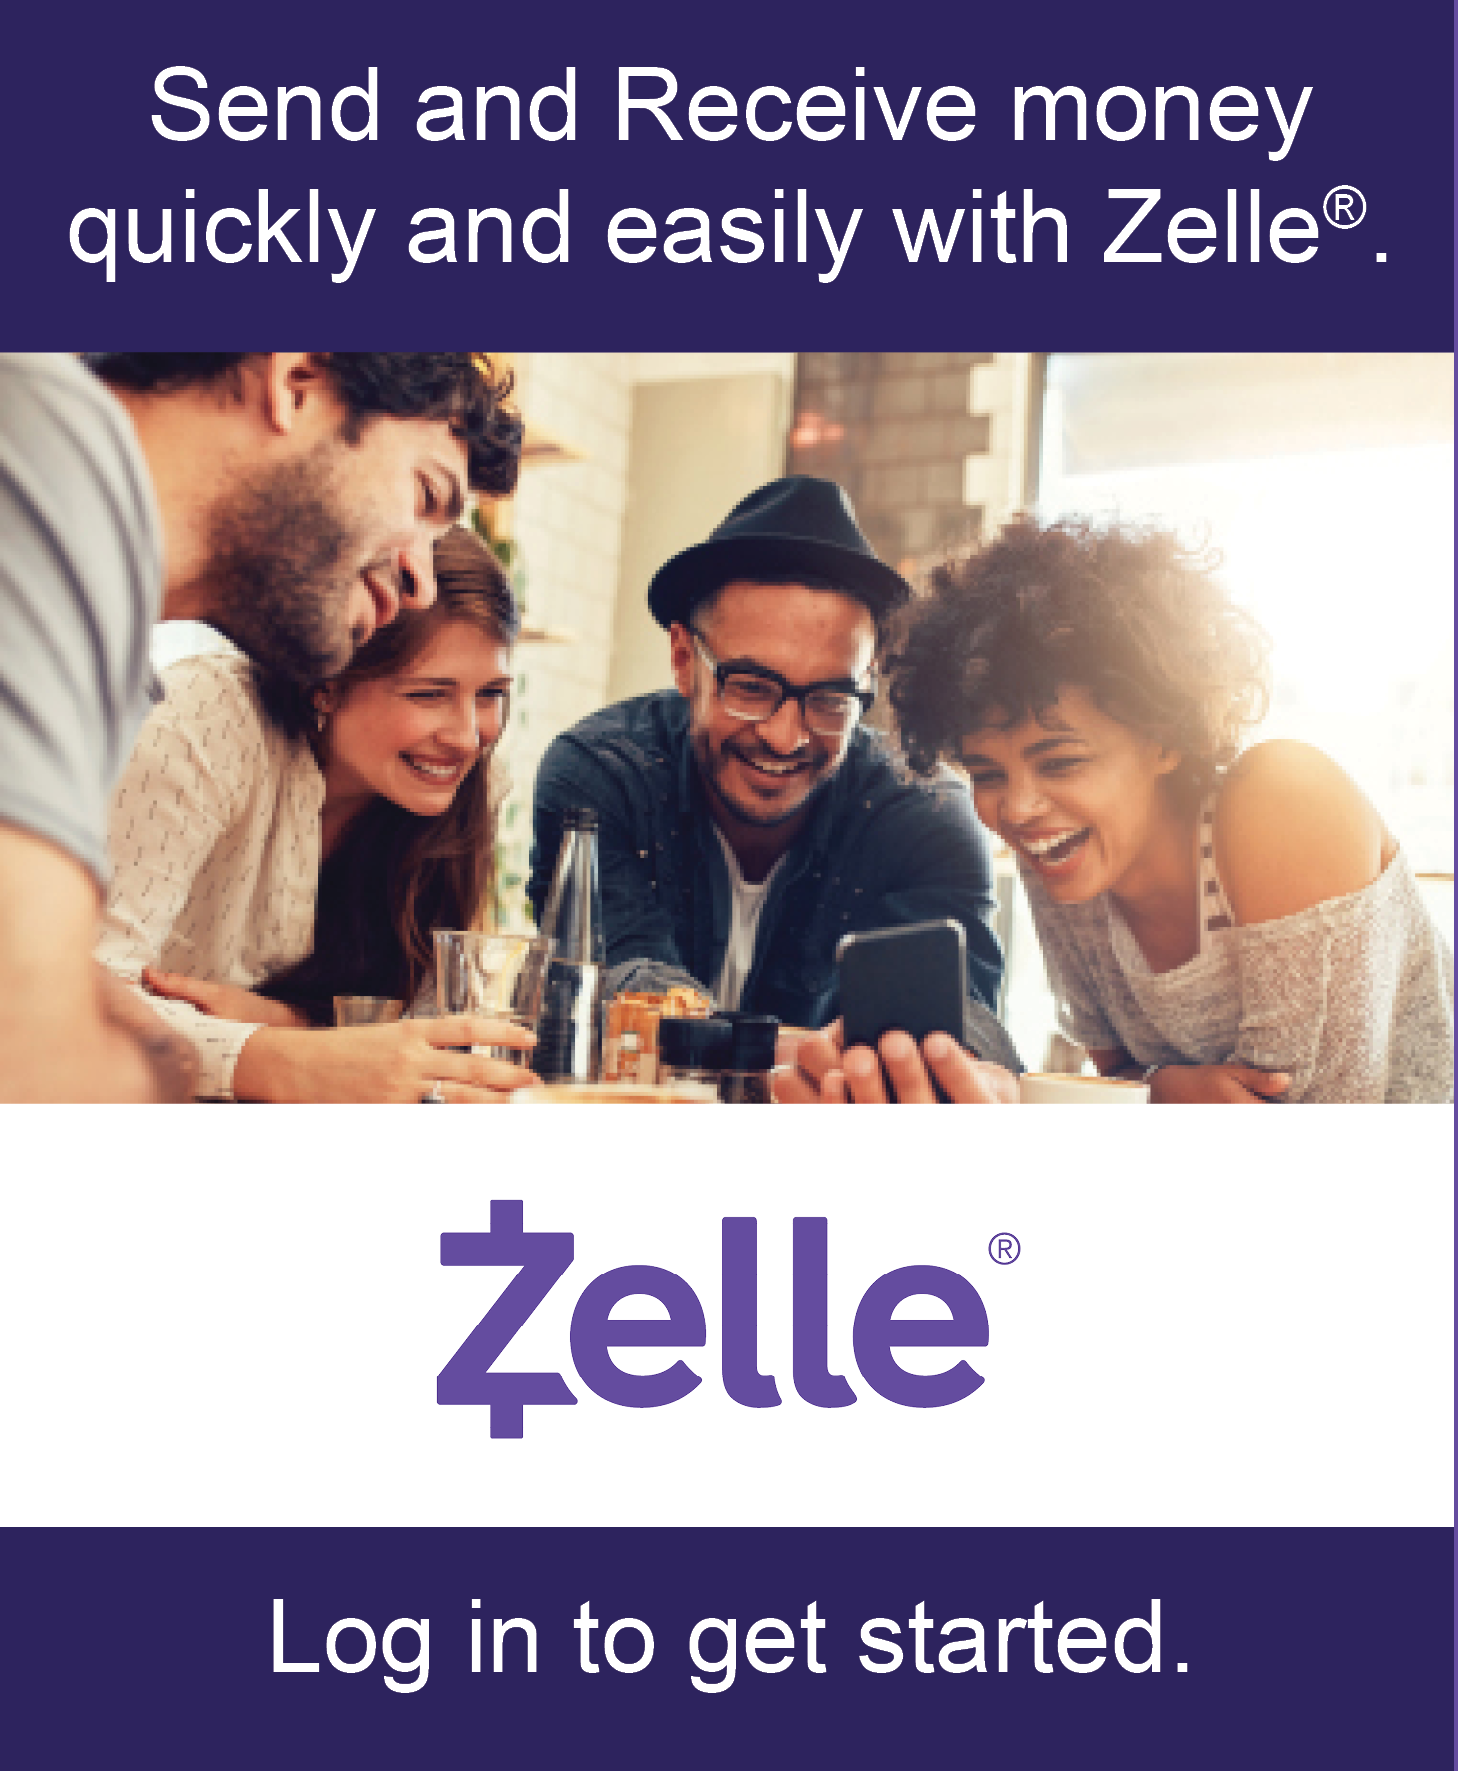 Image of a group of friends with the text send and receive money quickly and easily with Zelle